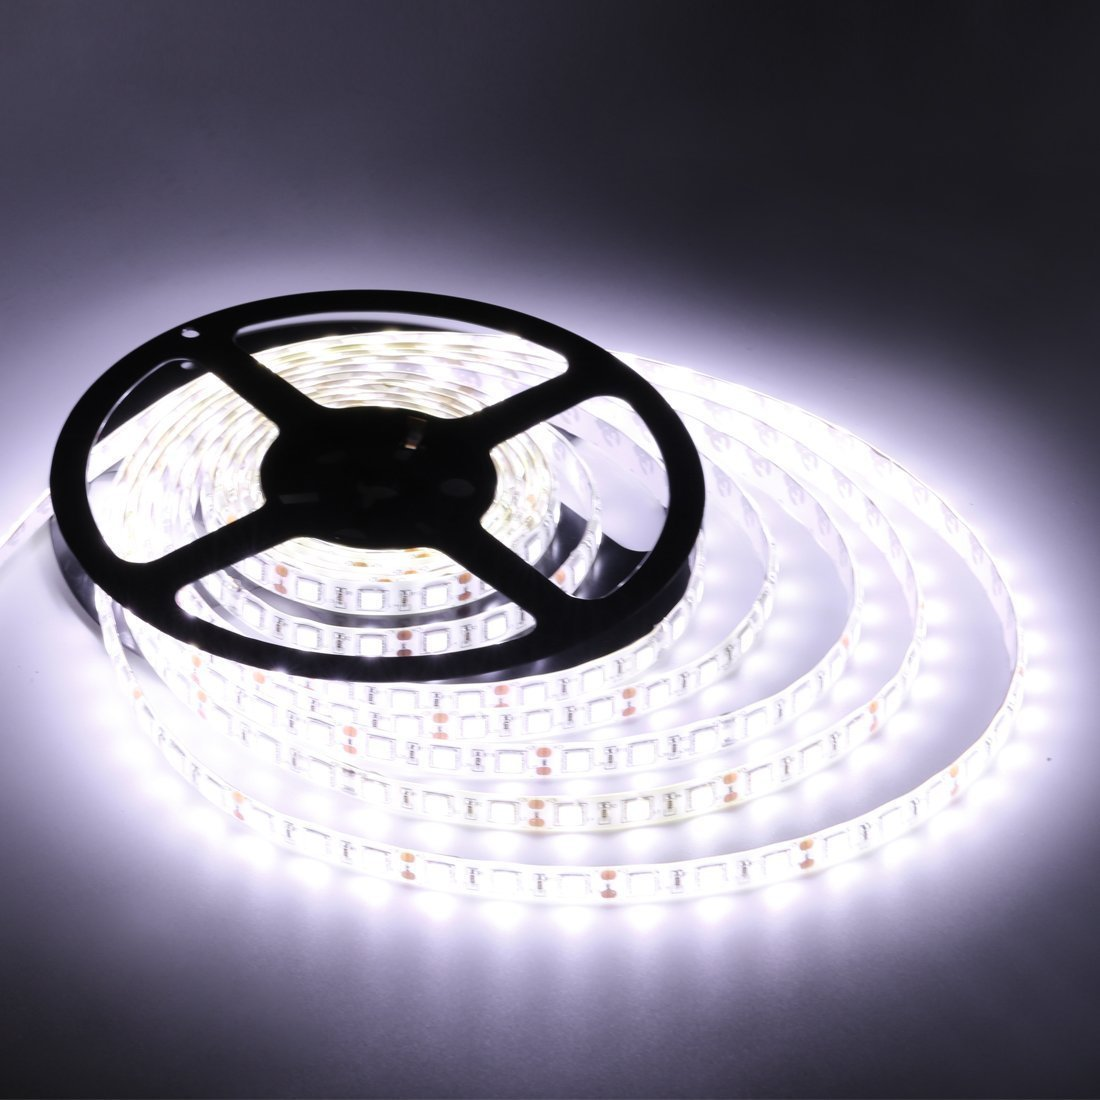 Amazon flexible led strip lights300 units smd 5050 ledsled amazon flexible led strip lights300 units smd 5050 ledsled strips waterproof12 volt led light strips pack of 164ft5mfor aloadofball Image collections